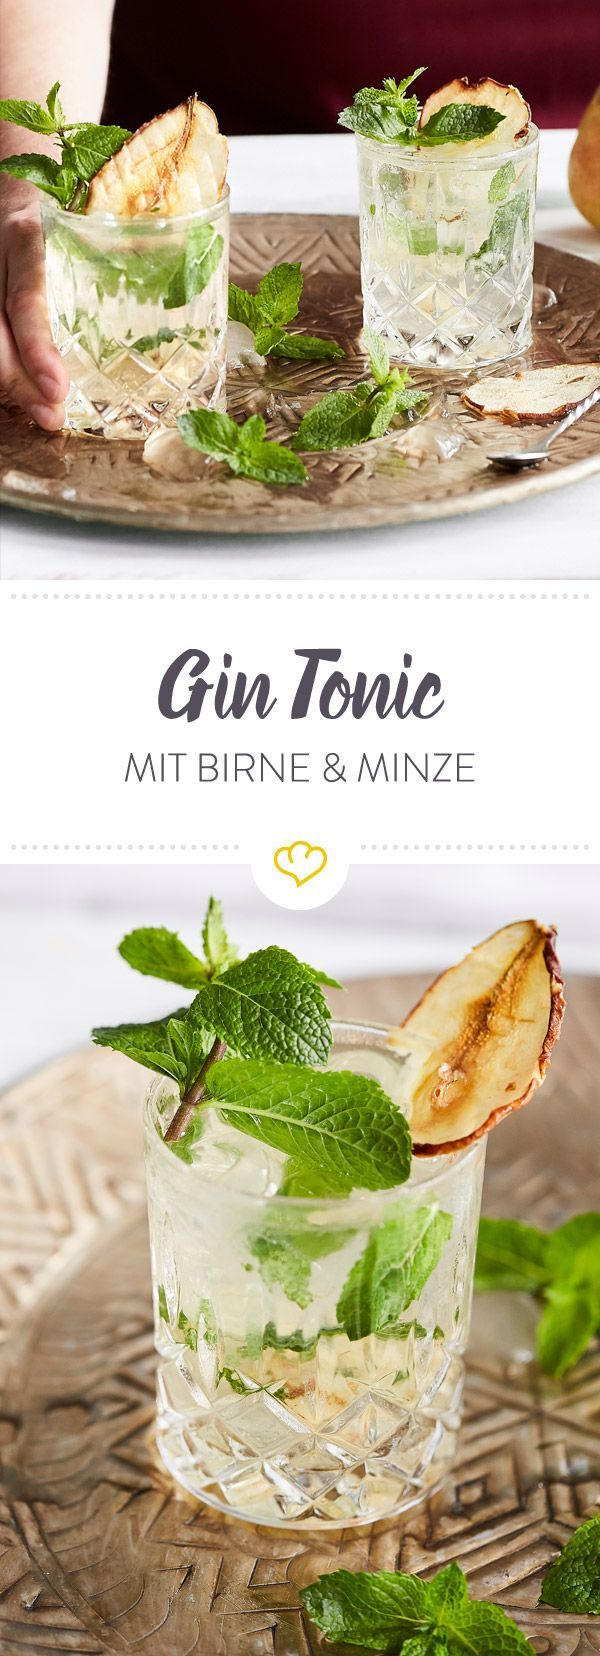 gin tonic mit getrockneter birne und frischer minze rezept 1 cocktails pinterest gin. Black Bedroom Furniture Sets. Home Design Ideas